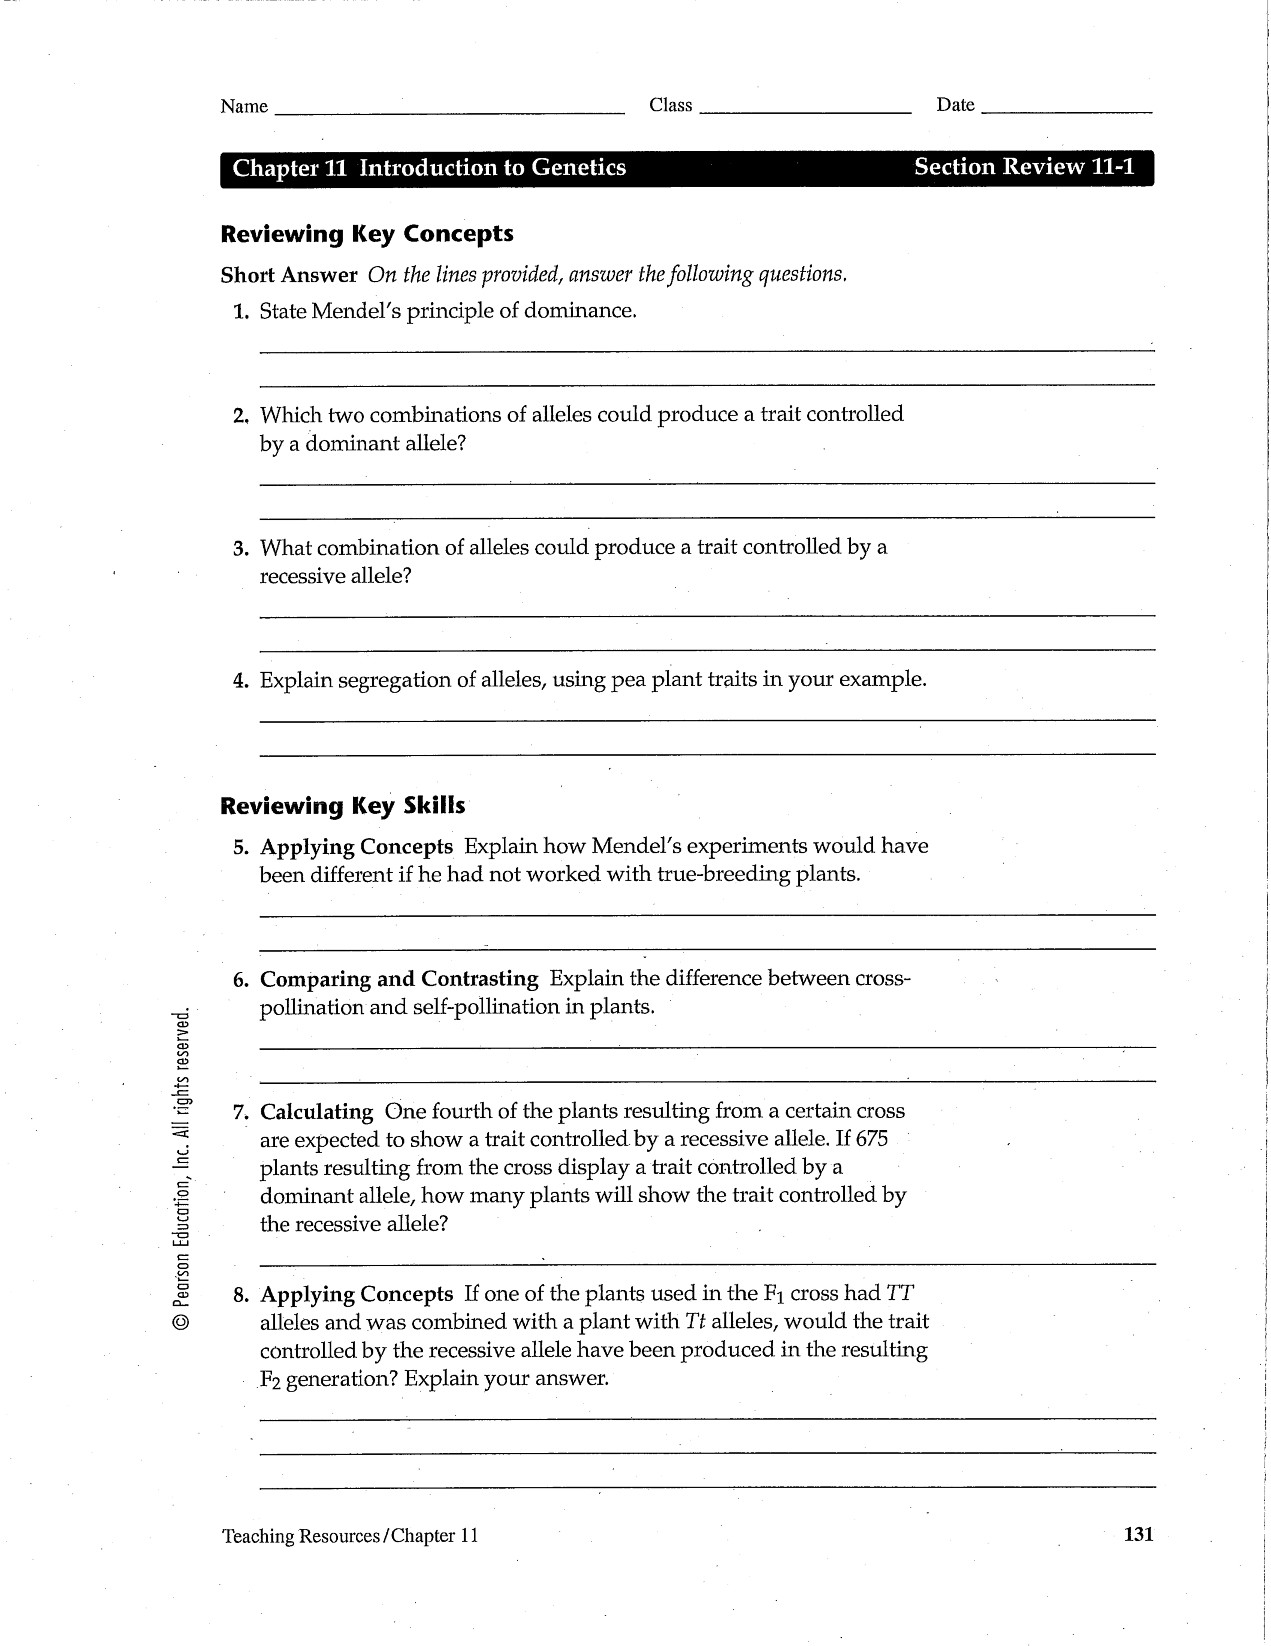 14 Best Images Of Dna And Genes Chapter 11 Worksheet Unit 4